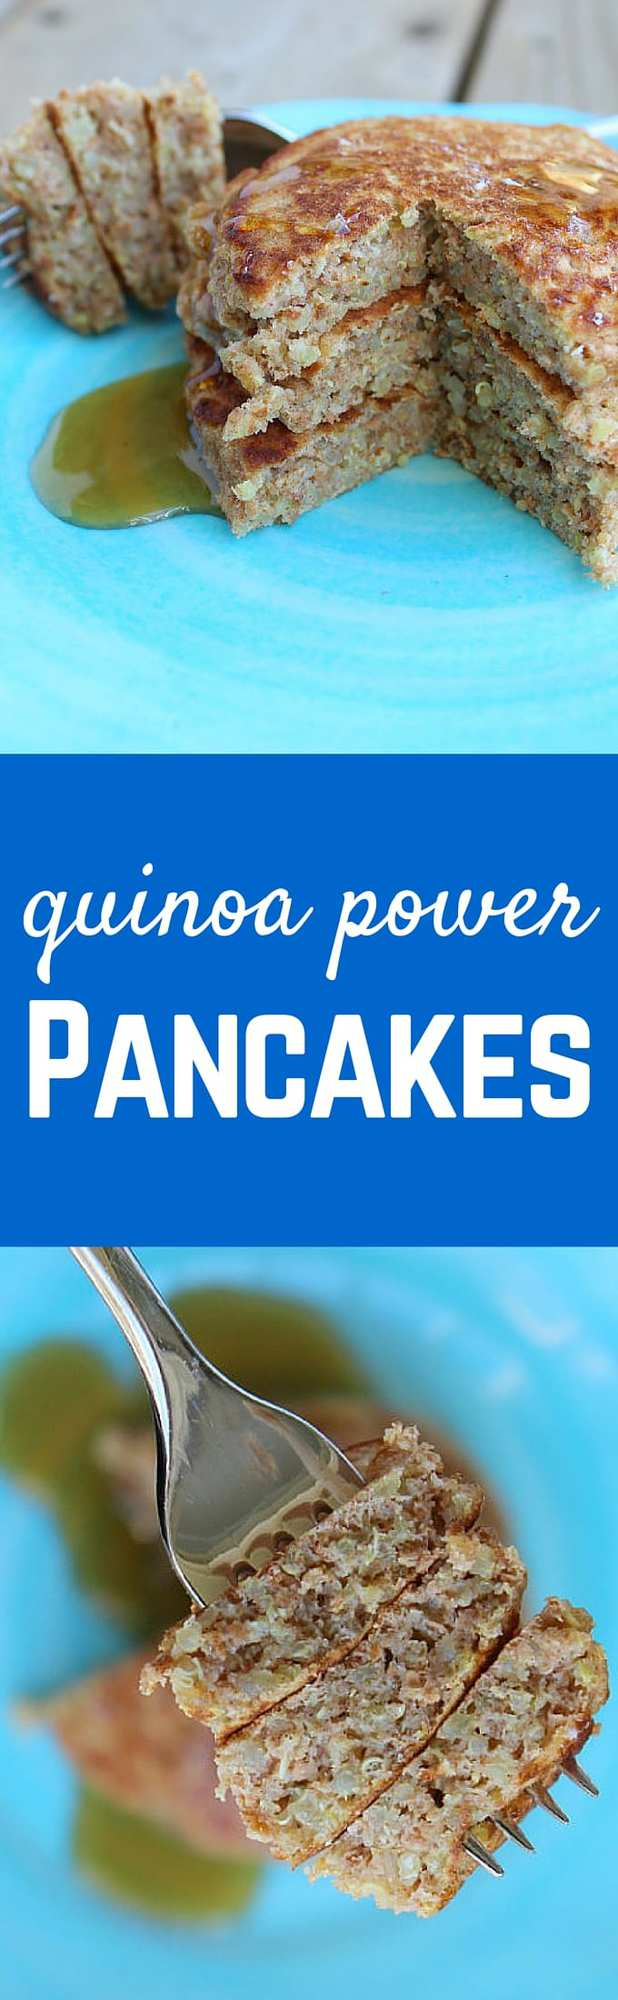 These quinoa power pancakes are a great way to start your day - this filling and healthy breakfast will keep you satisfied all day. Get the easy recipe on RachelCooks.com!